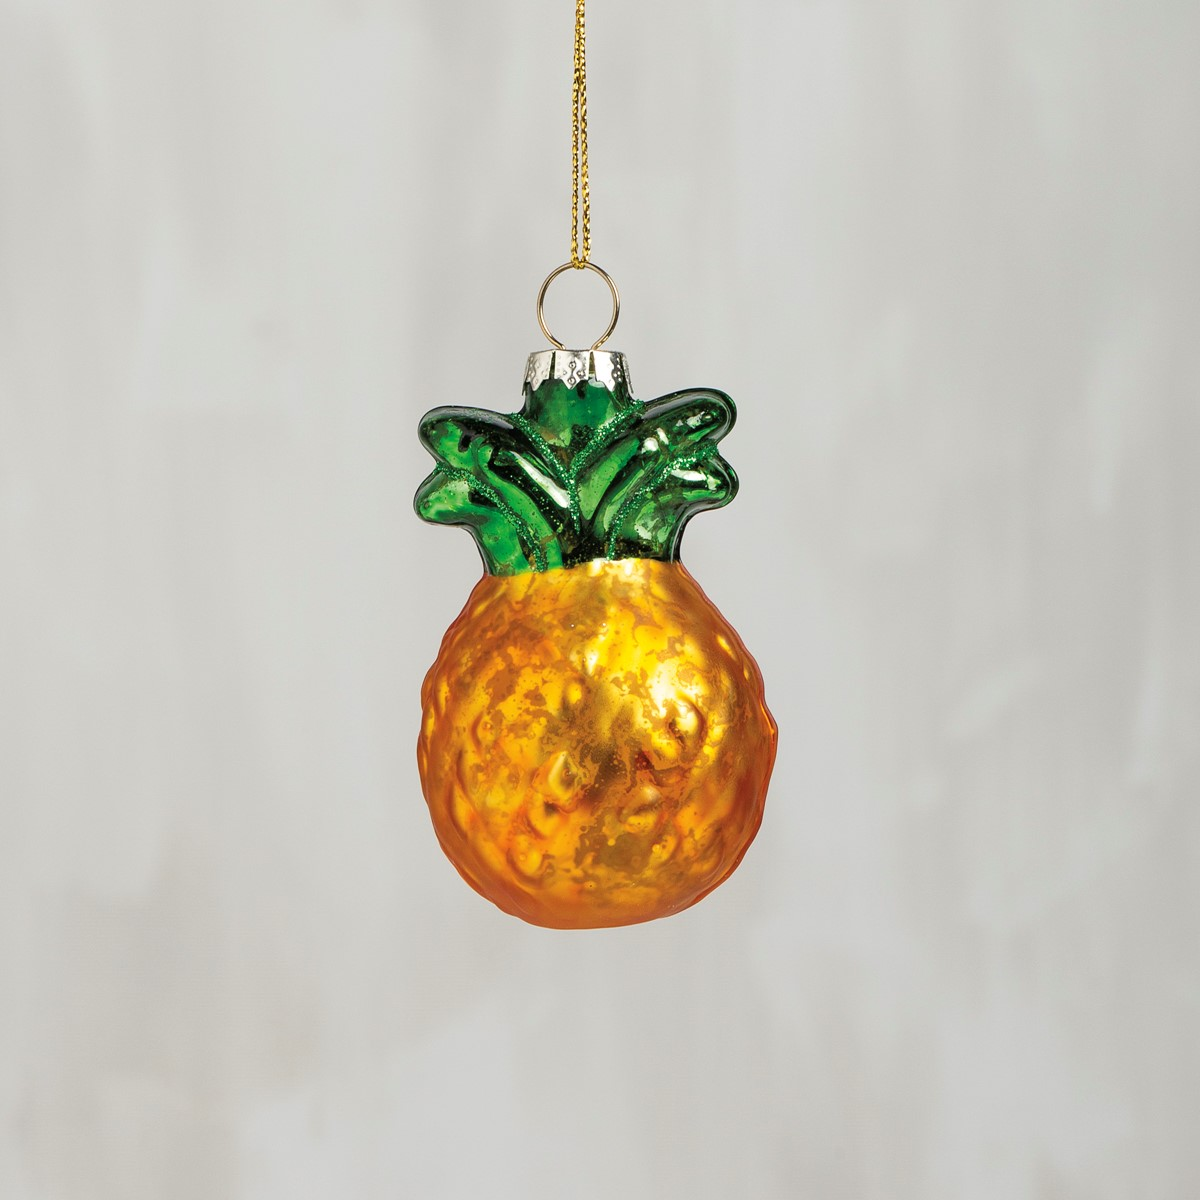 "Glass Ornament - Pineapple - 2"" x 3"" x 1.75"" - Glass, Metal"